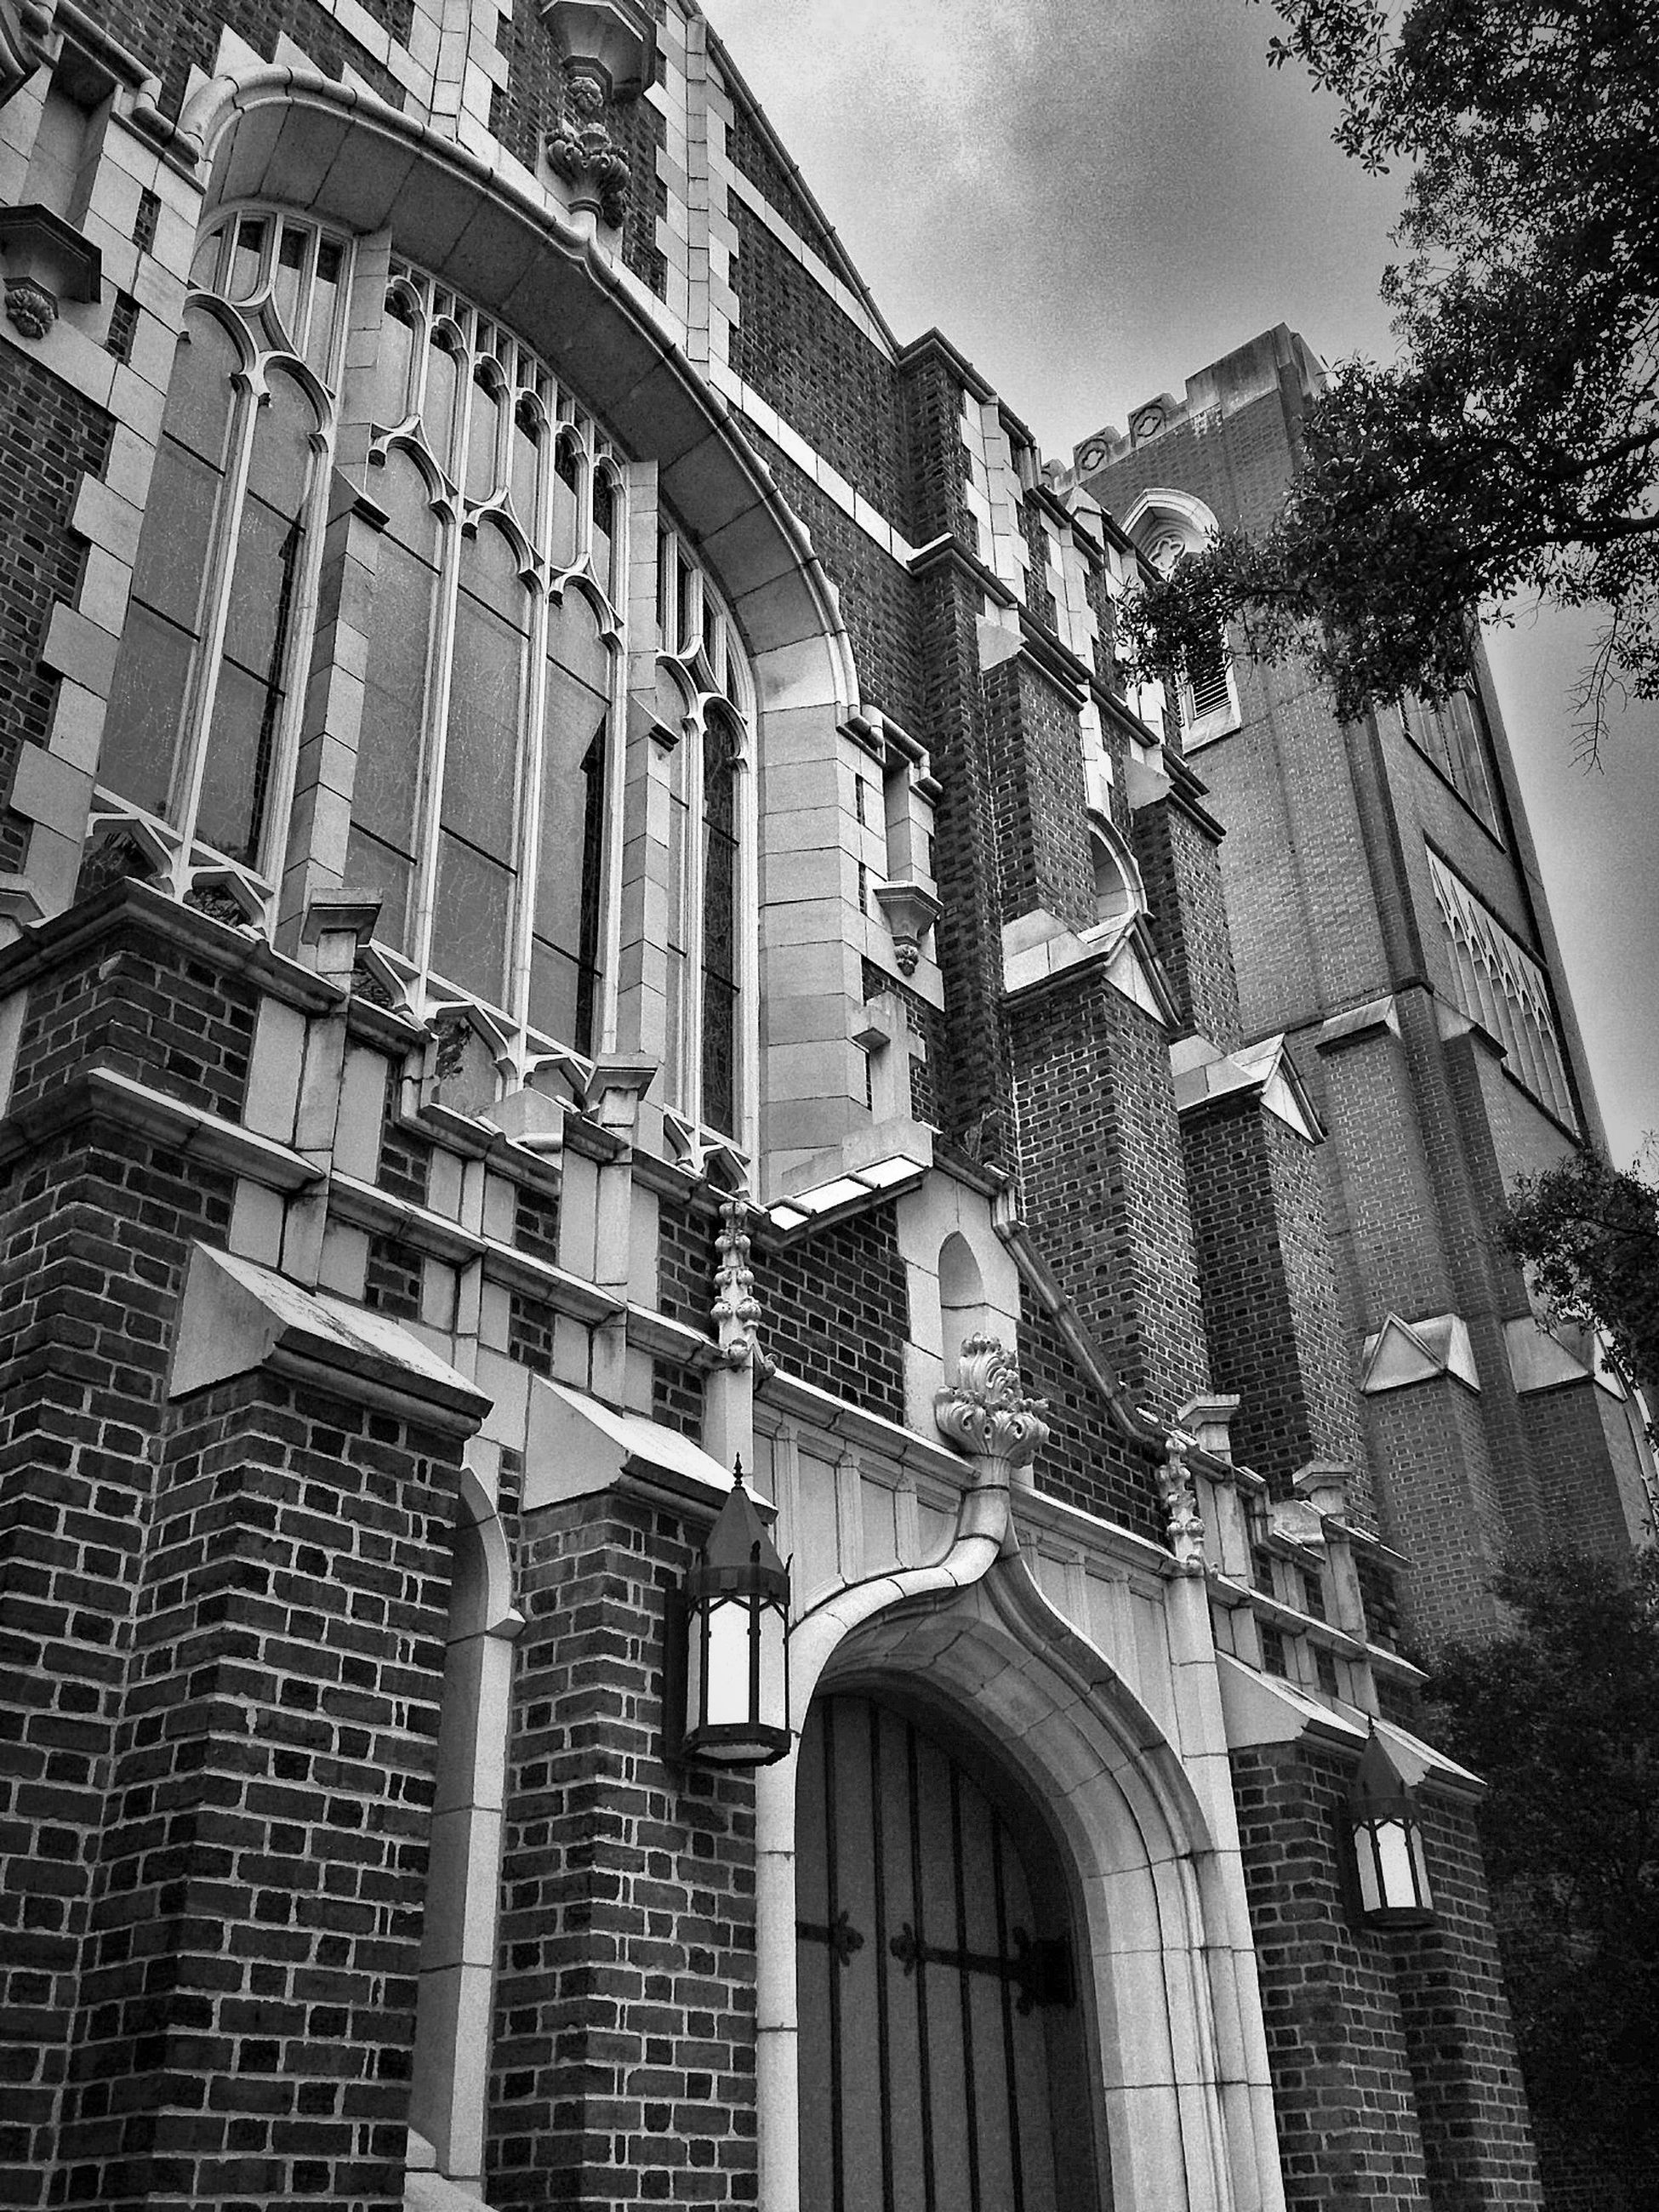 Hdr_Collection Blackandwhite Architecture Bw_collection